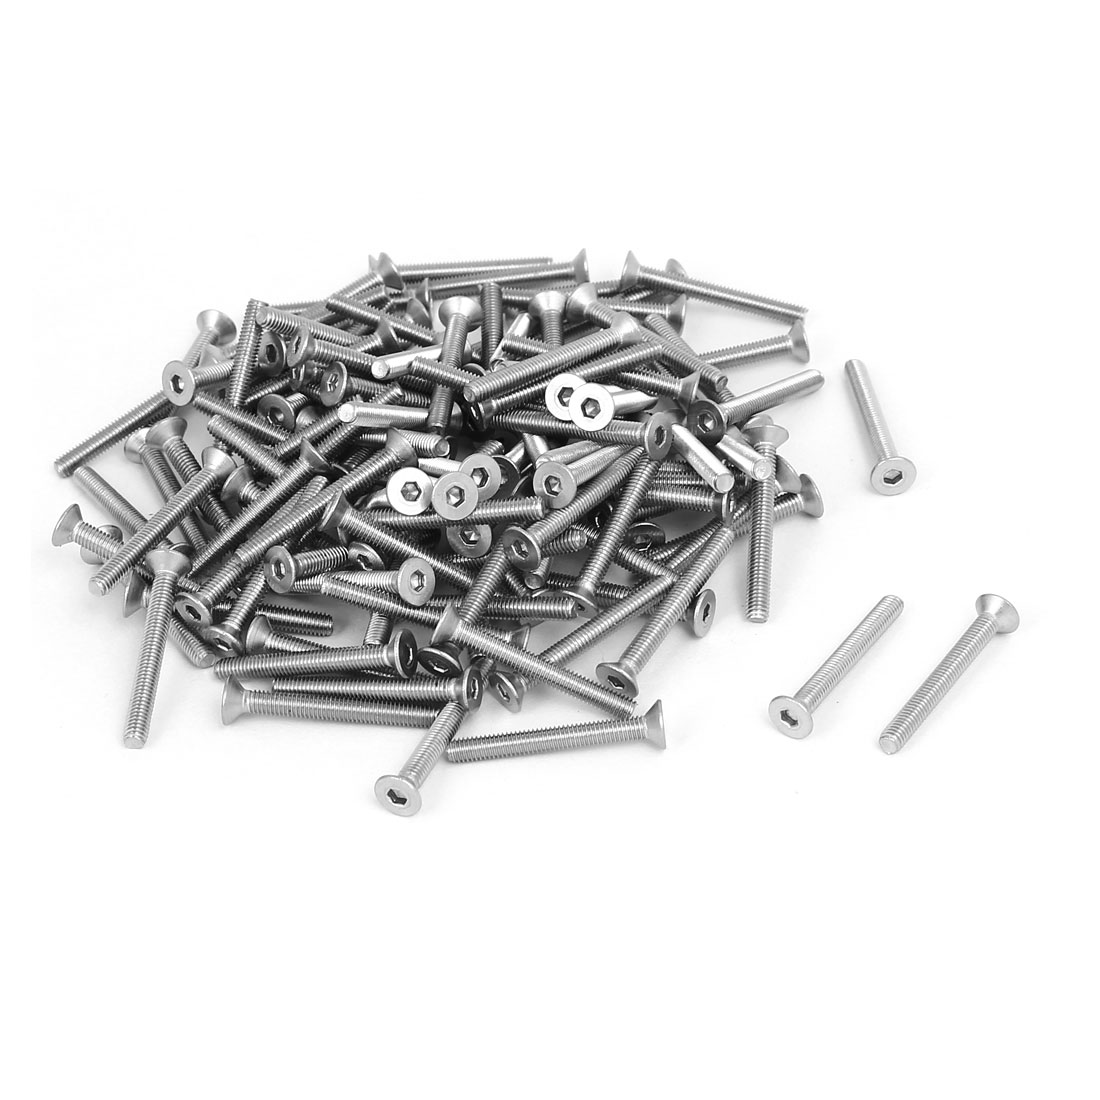 M3x25mm 304 Stainless Steel Flat Head Hex Socket Screws Fasteners DIN7991 120pcs